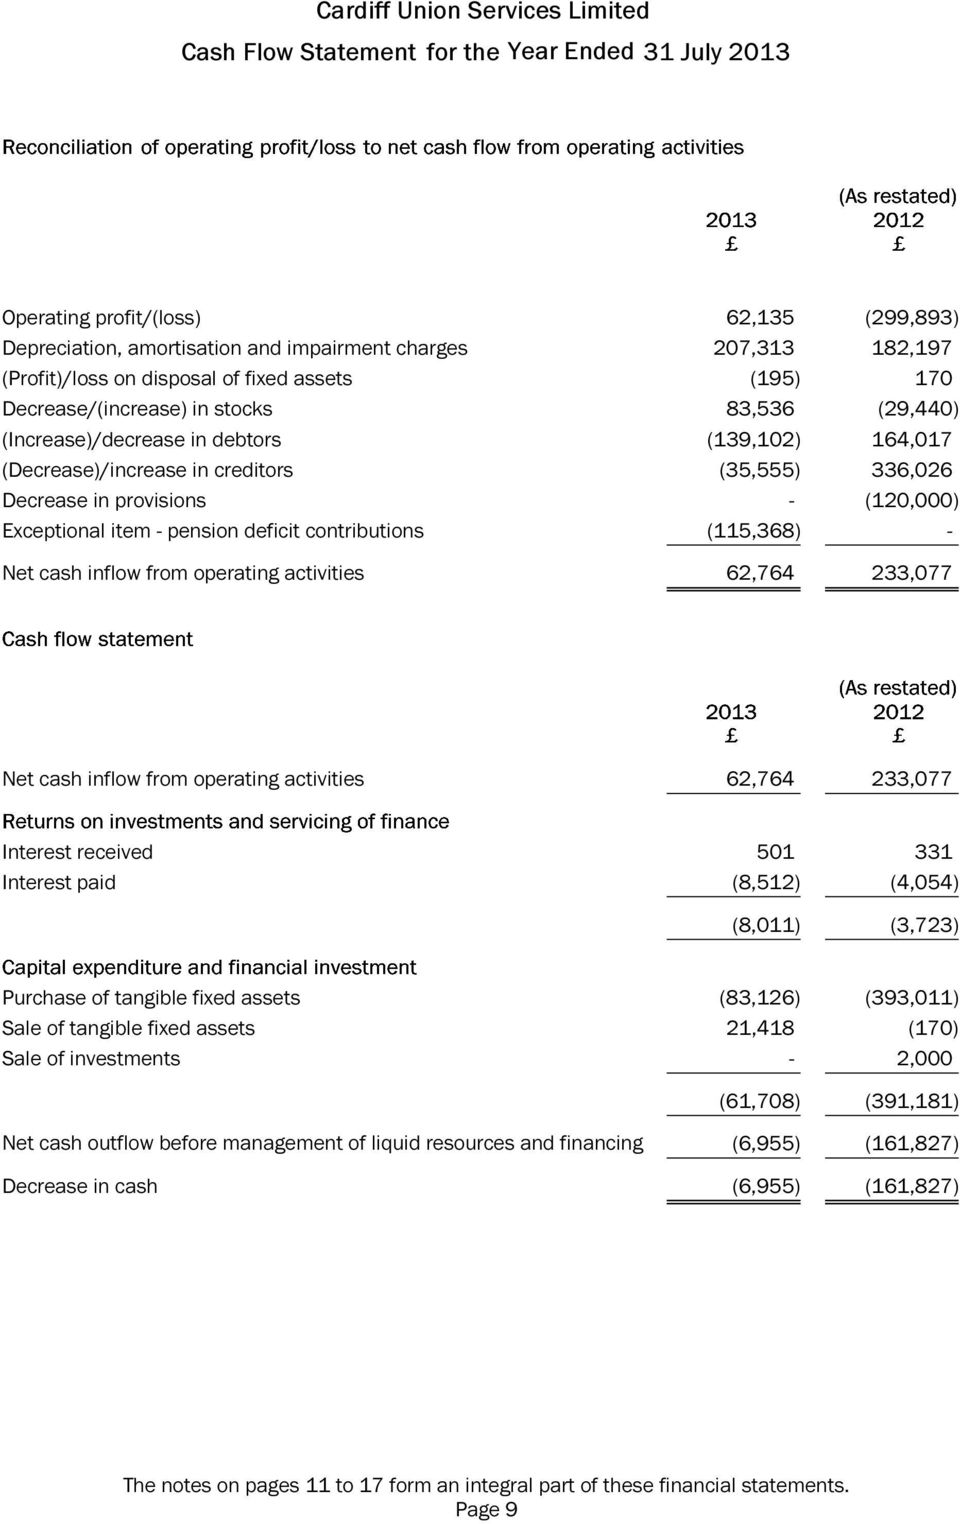 Exceptional item - pension deficit contributions (115,368) - Net cash inflow from operating activities 62,764 233,077 Net cash inflow from operating activities 62,764 233,077 Interest received 501